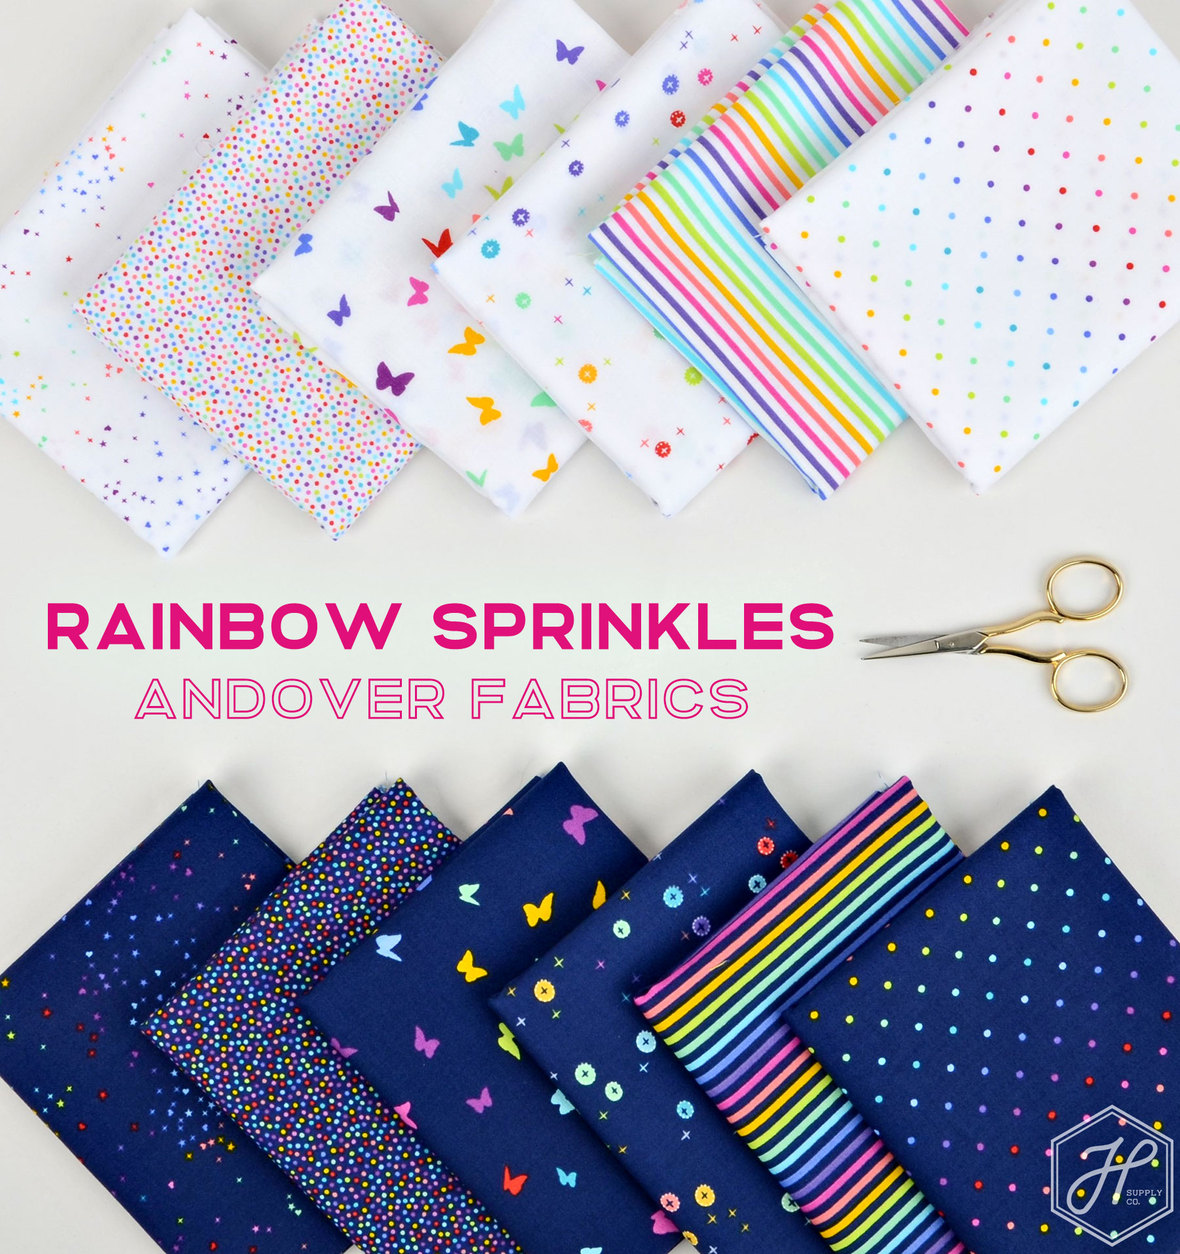 Rainbow-Sprinkles-Fabric-Andover-at-Hawthorne